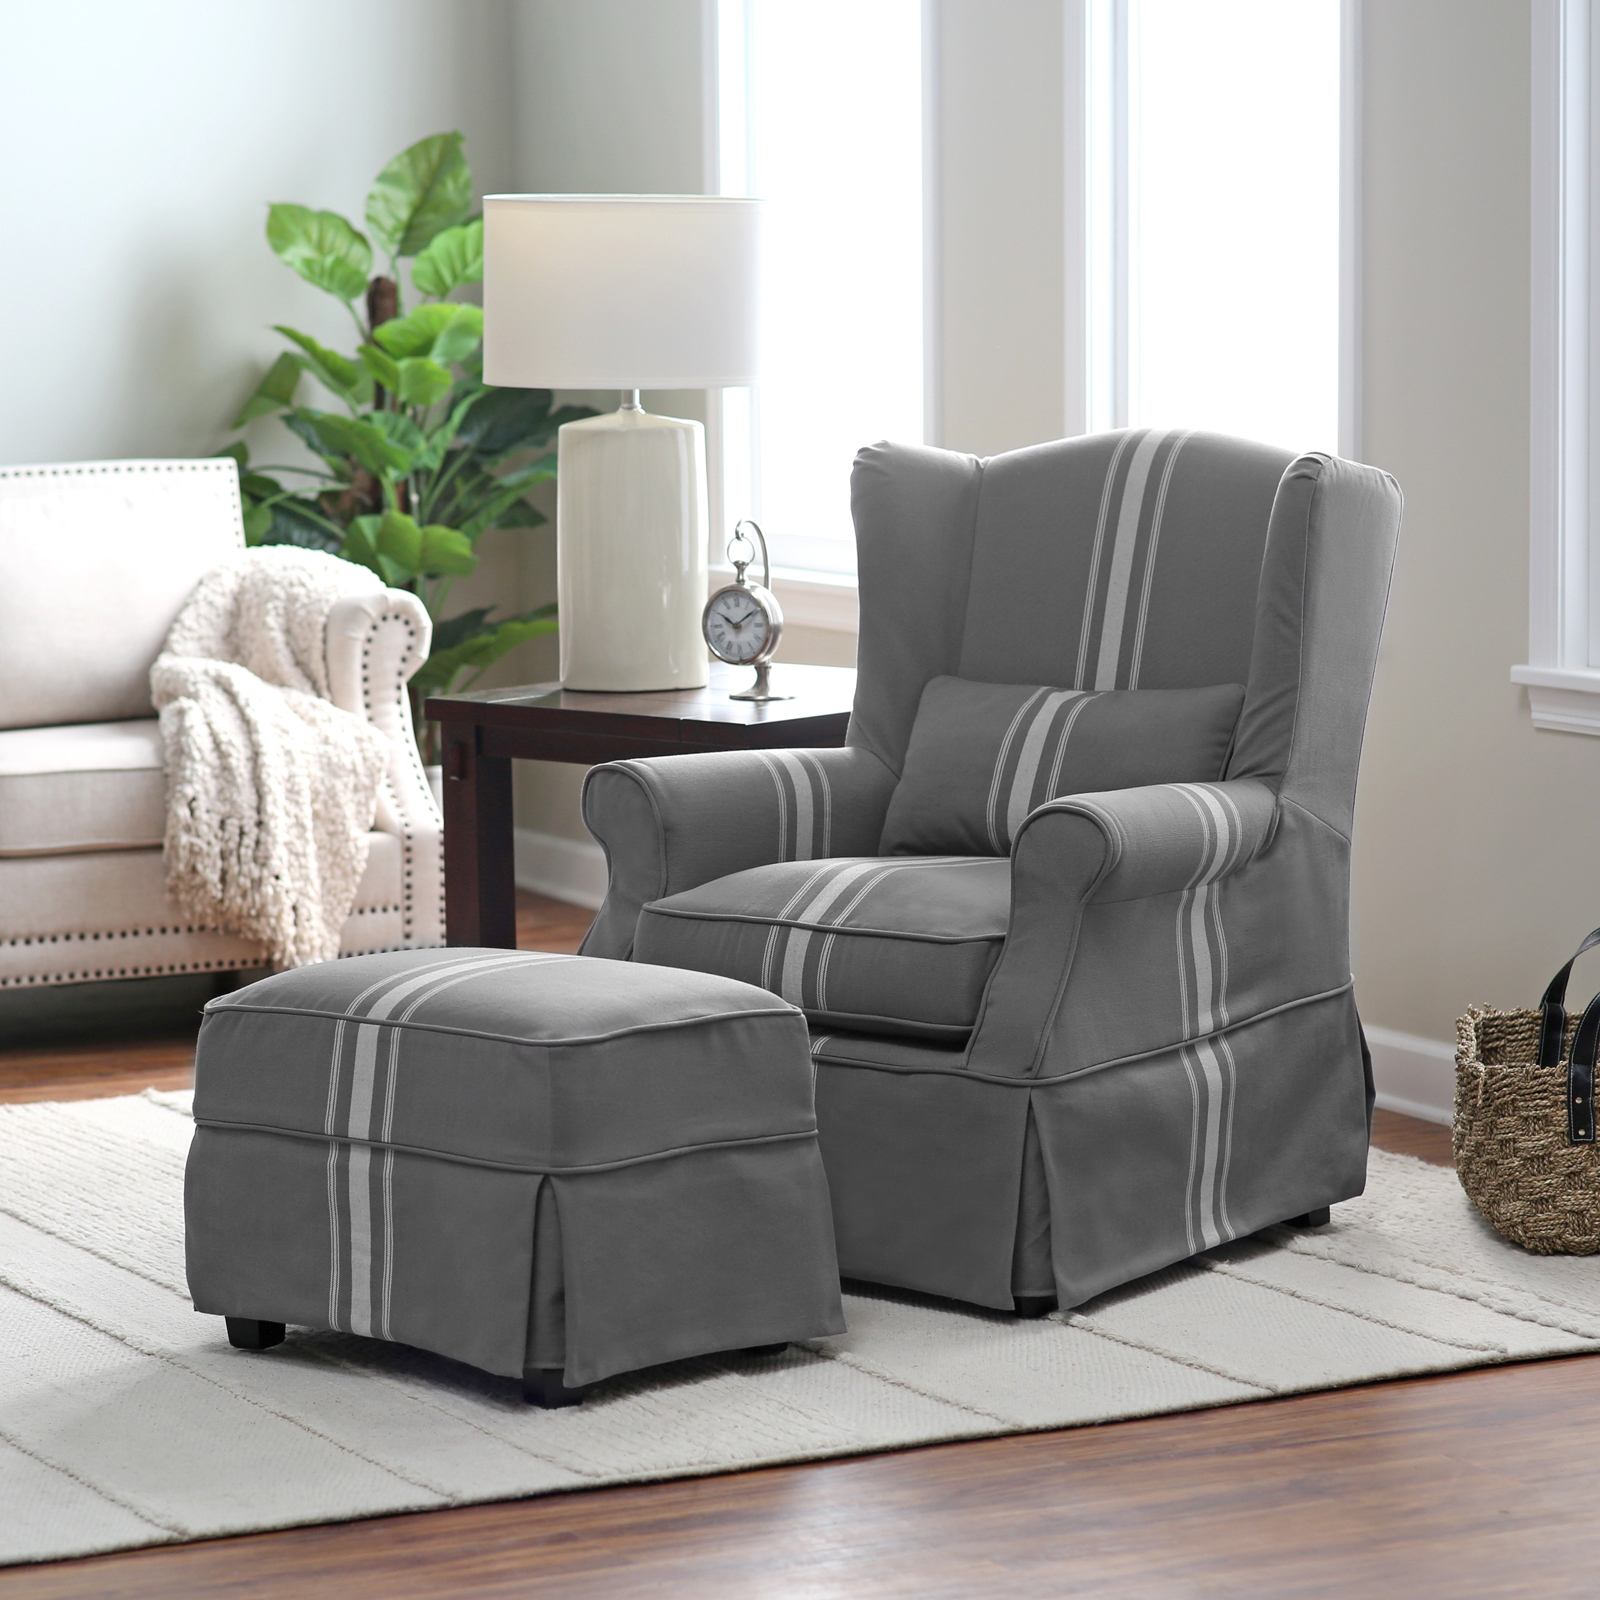 striped living room chair belham living striped arm chair and ottoman 15053